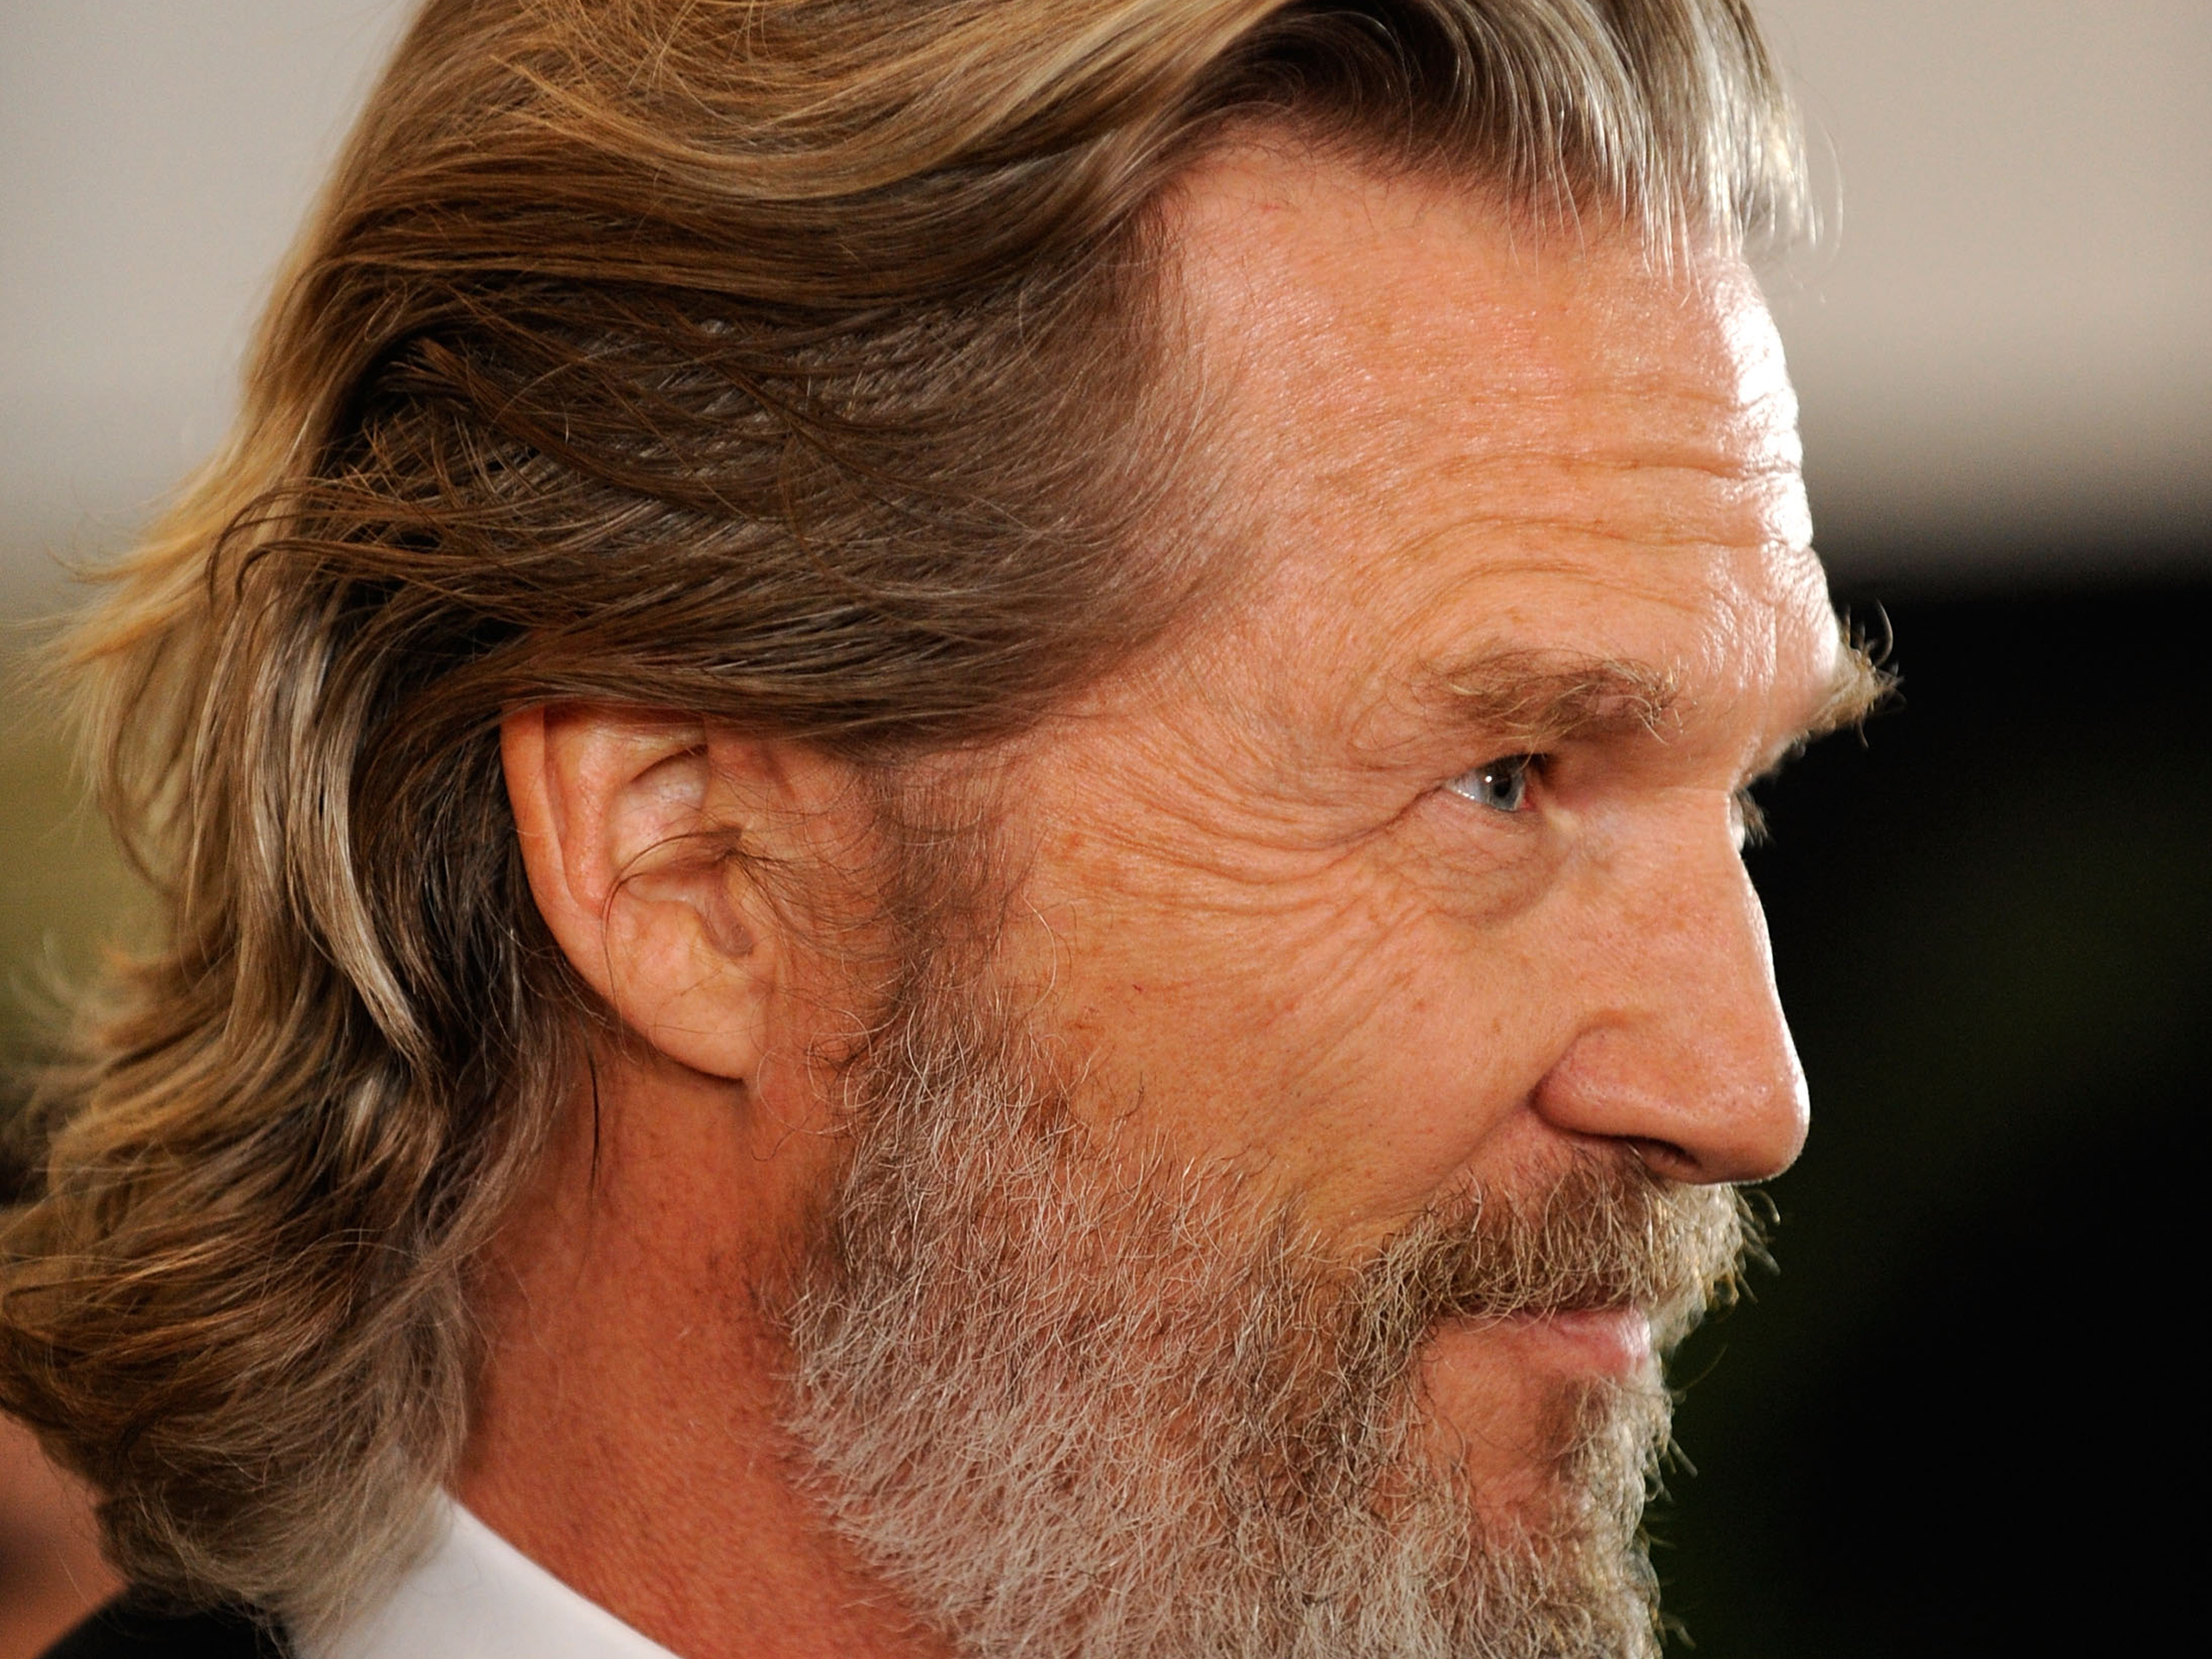 Jeff Bridges Wif HD Wallpaper Background Images 2560x1920